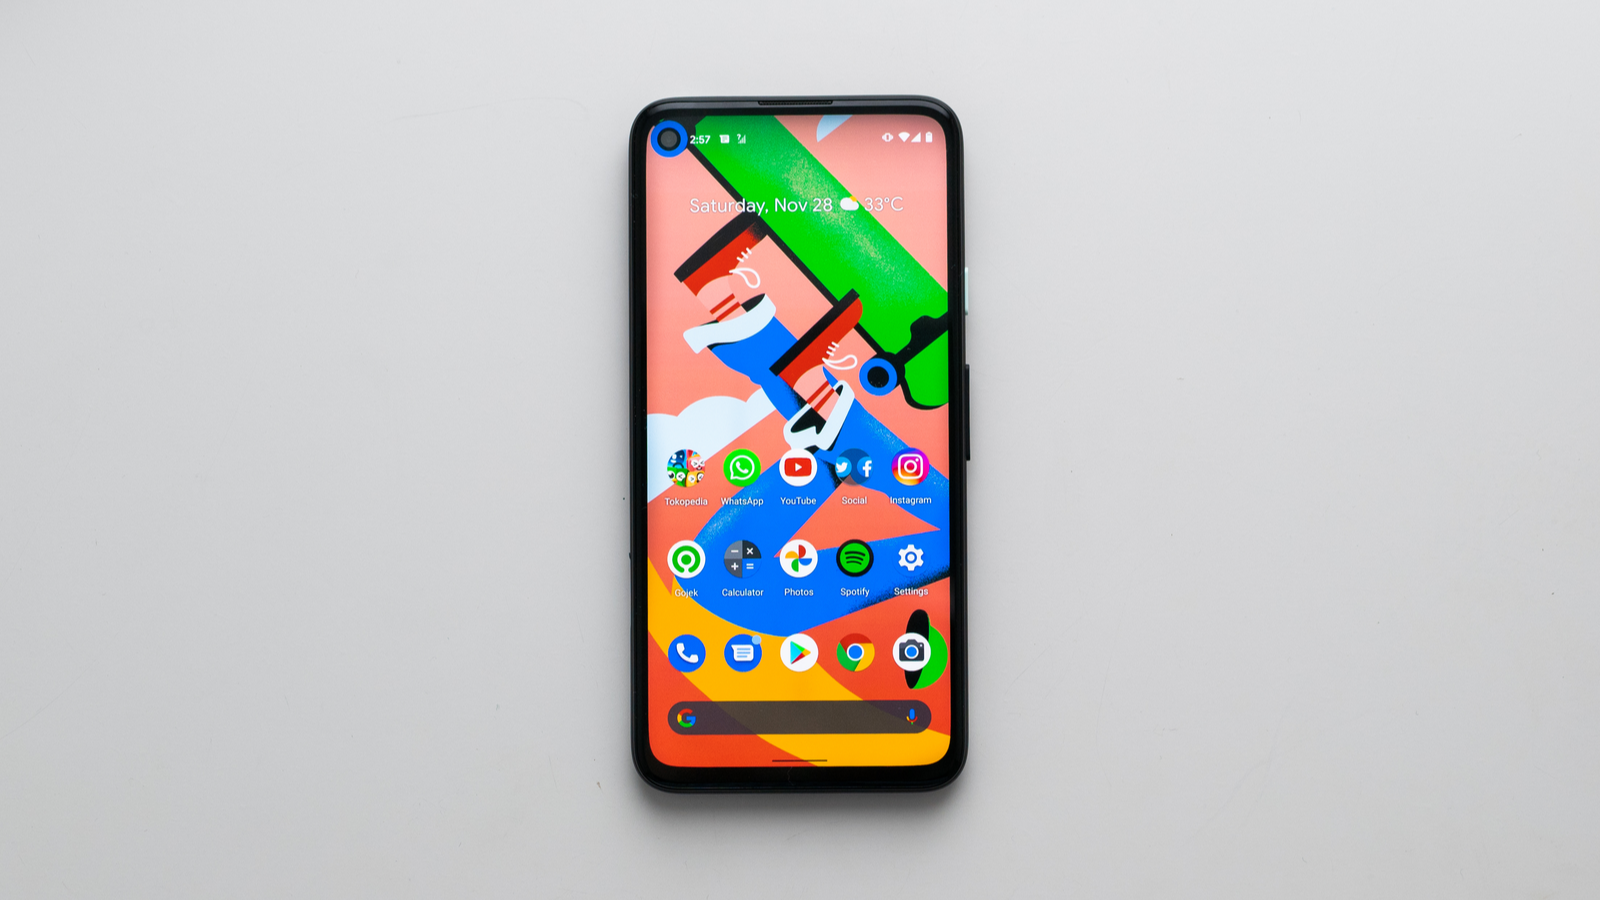 Top view of Google Pixel phone against light grey background